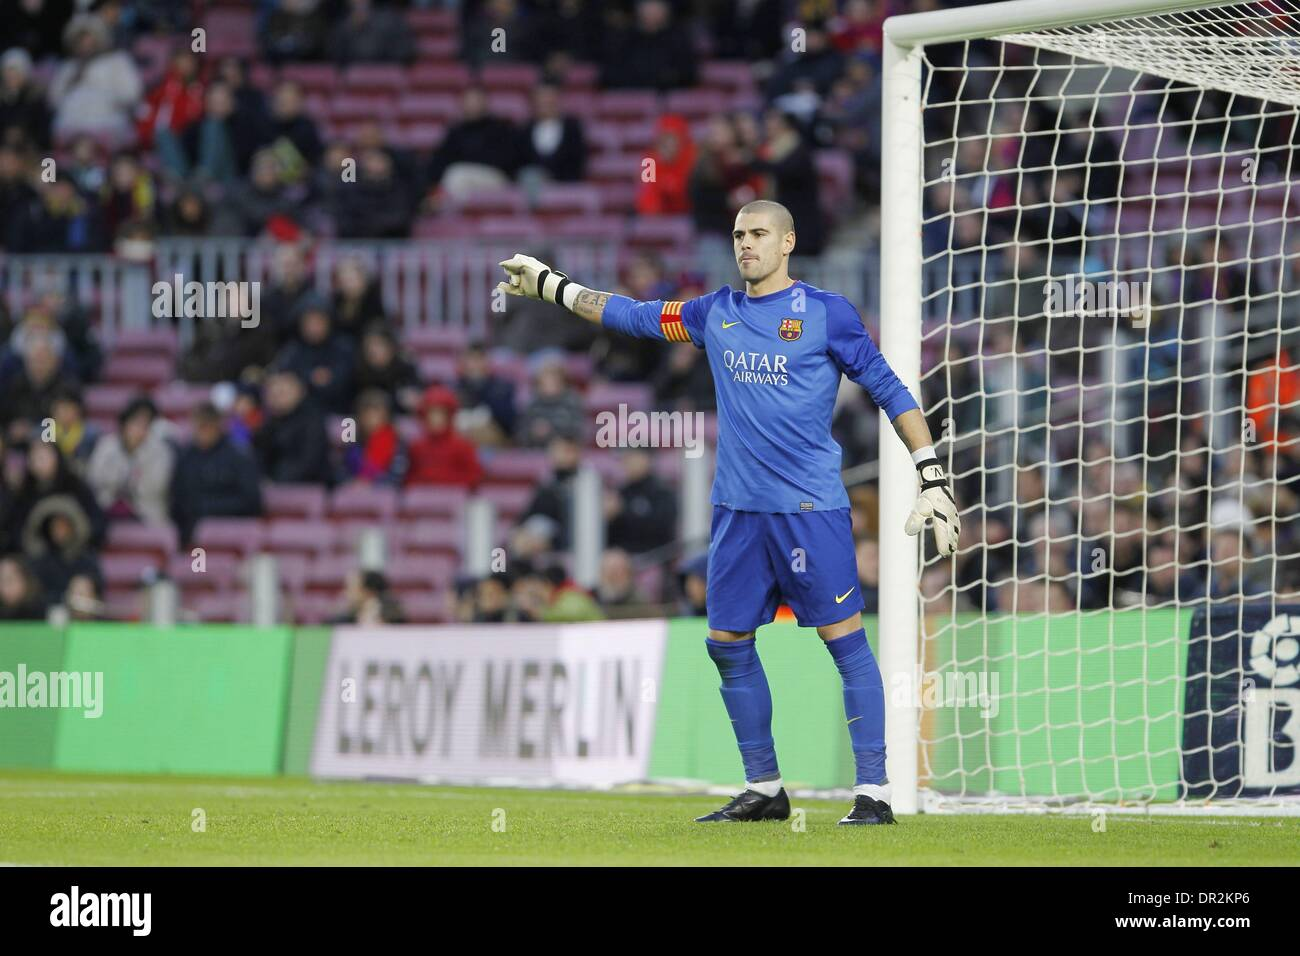 e19d6865e6d Victor Valdes Stock Photos   Victor Valdes Stock Images - Page 6 - Alamy